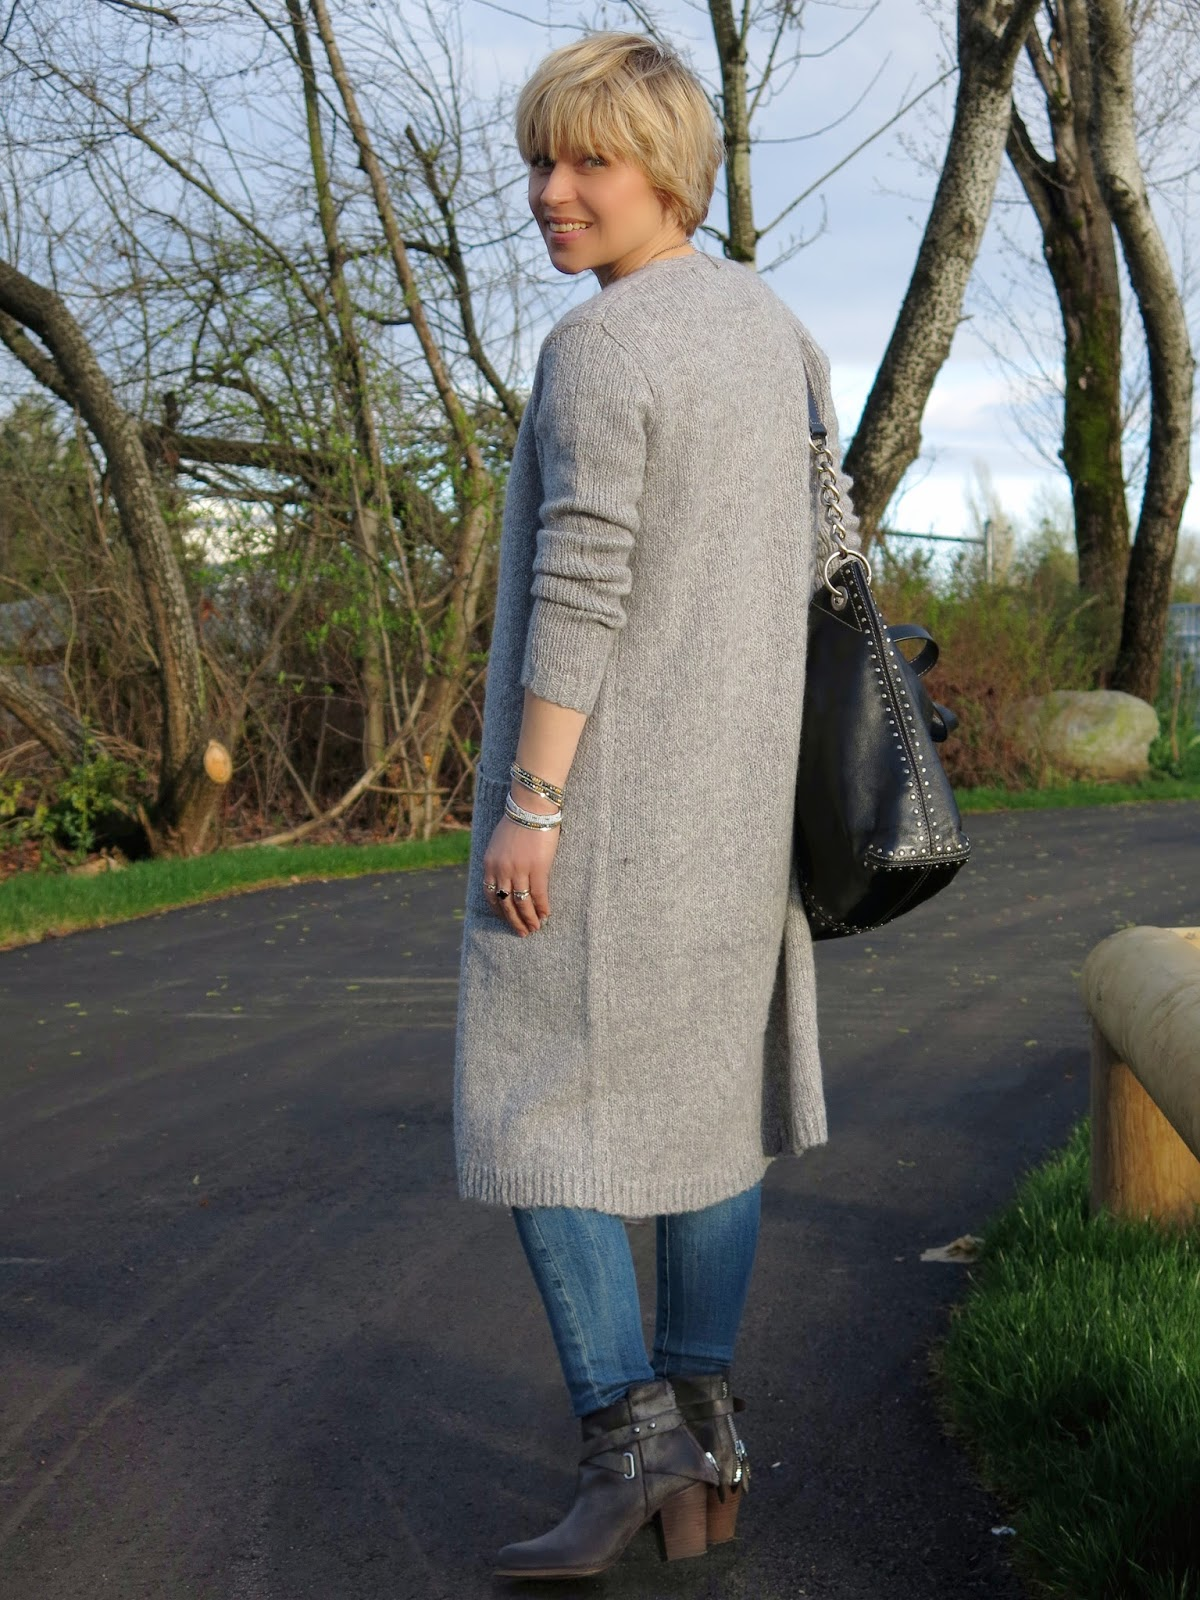 styling a long cardigan with skinny jeans and booties